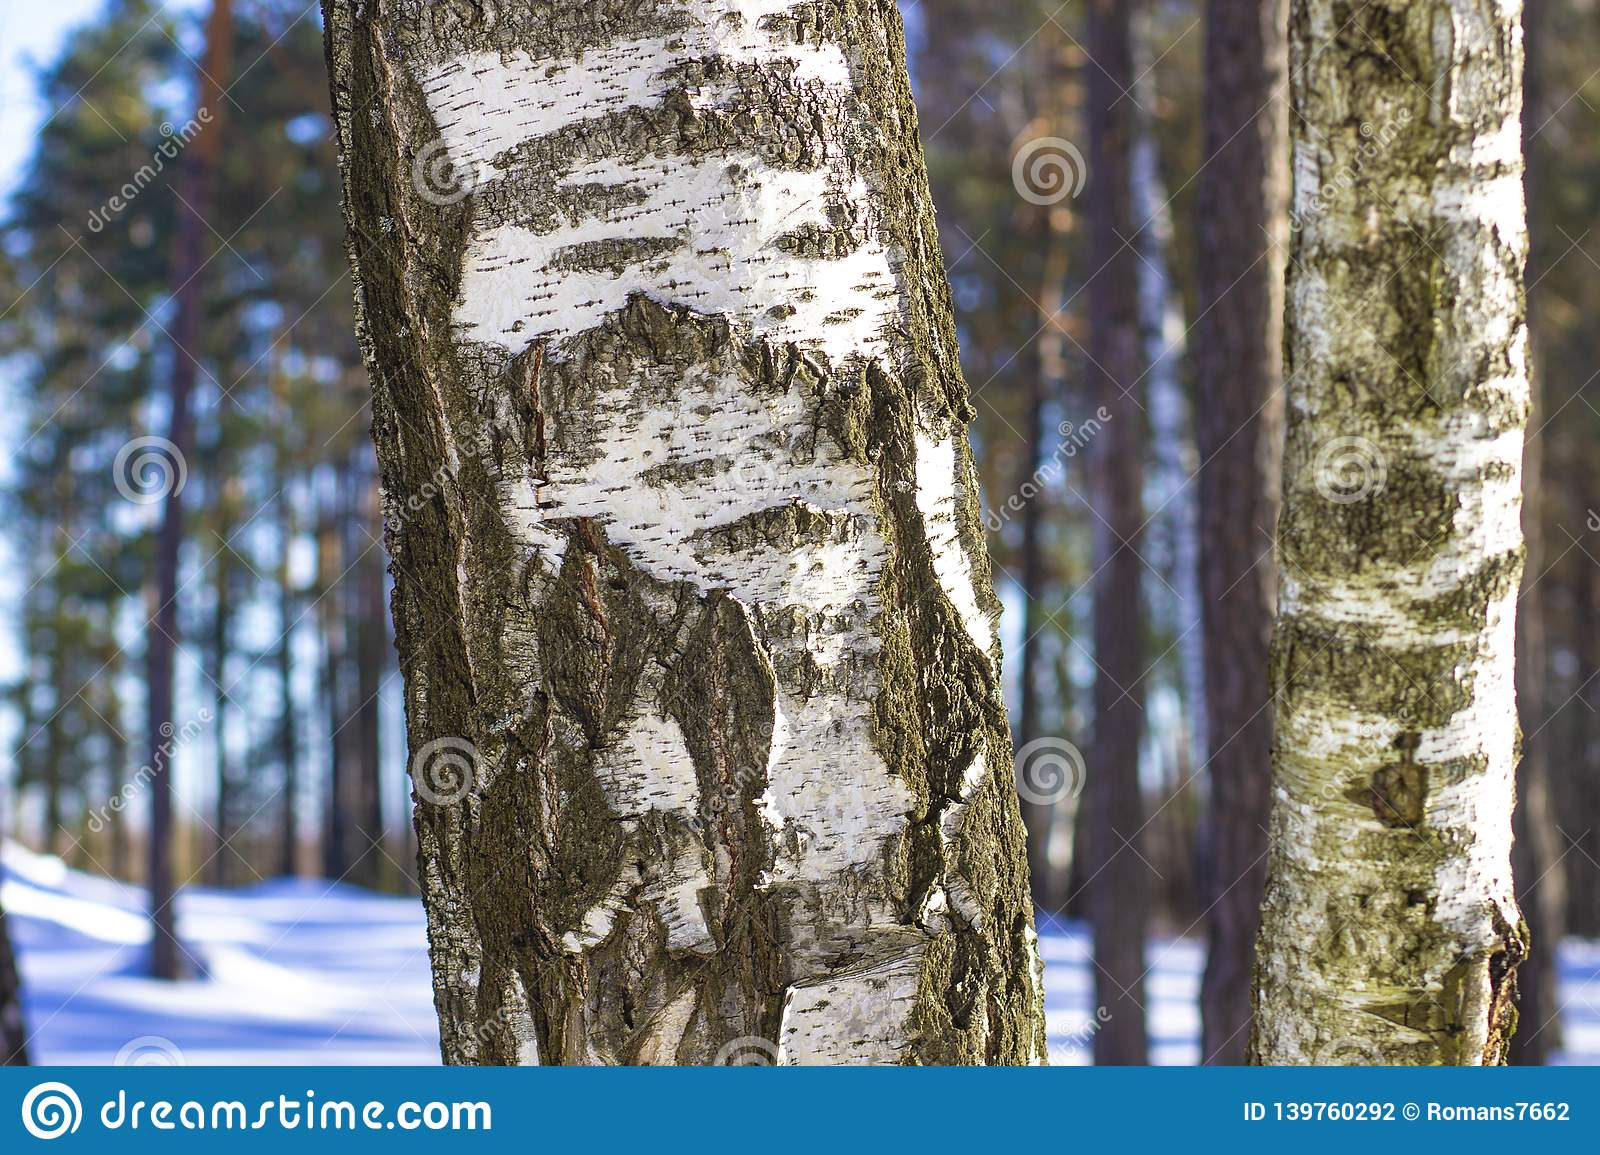 White birches in the winter forest